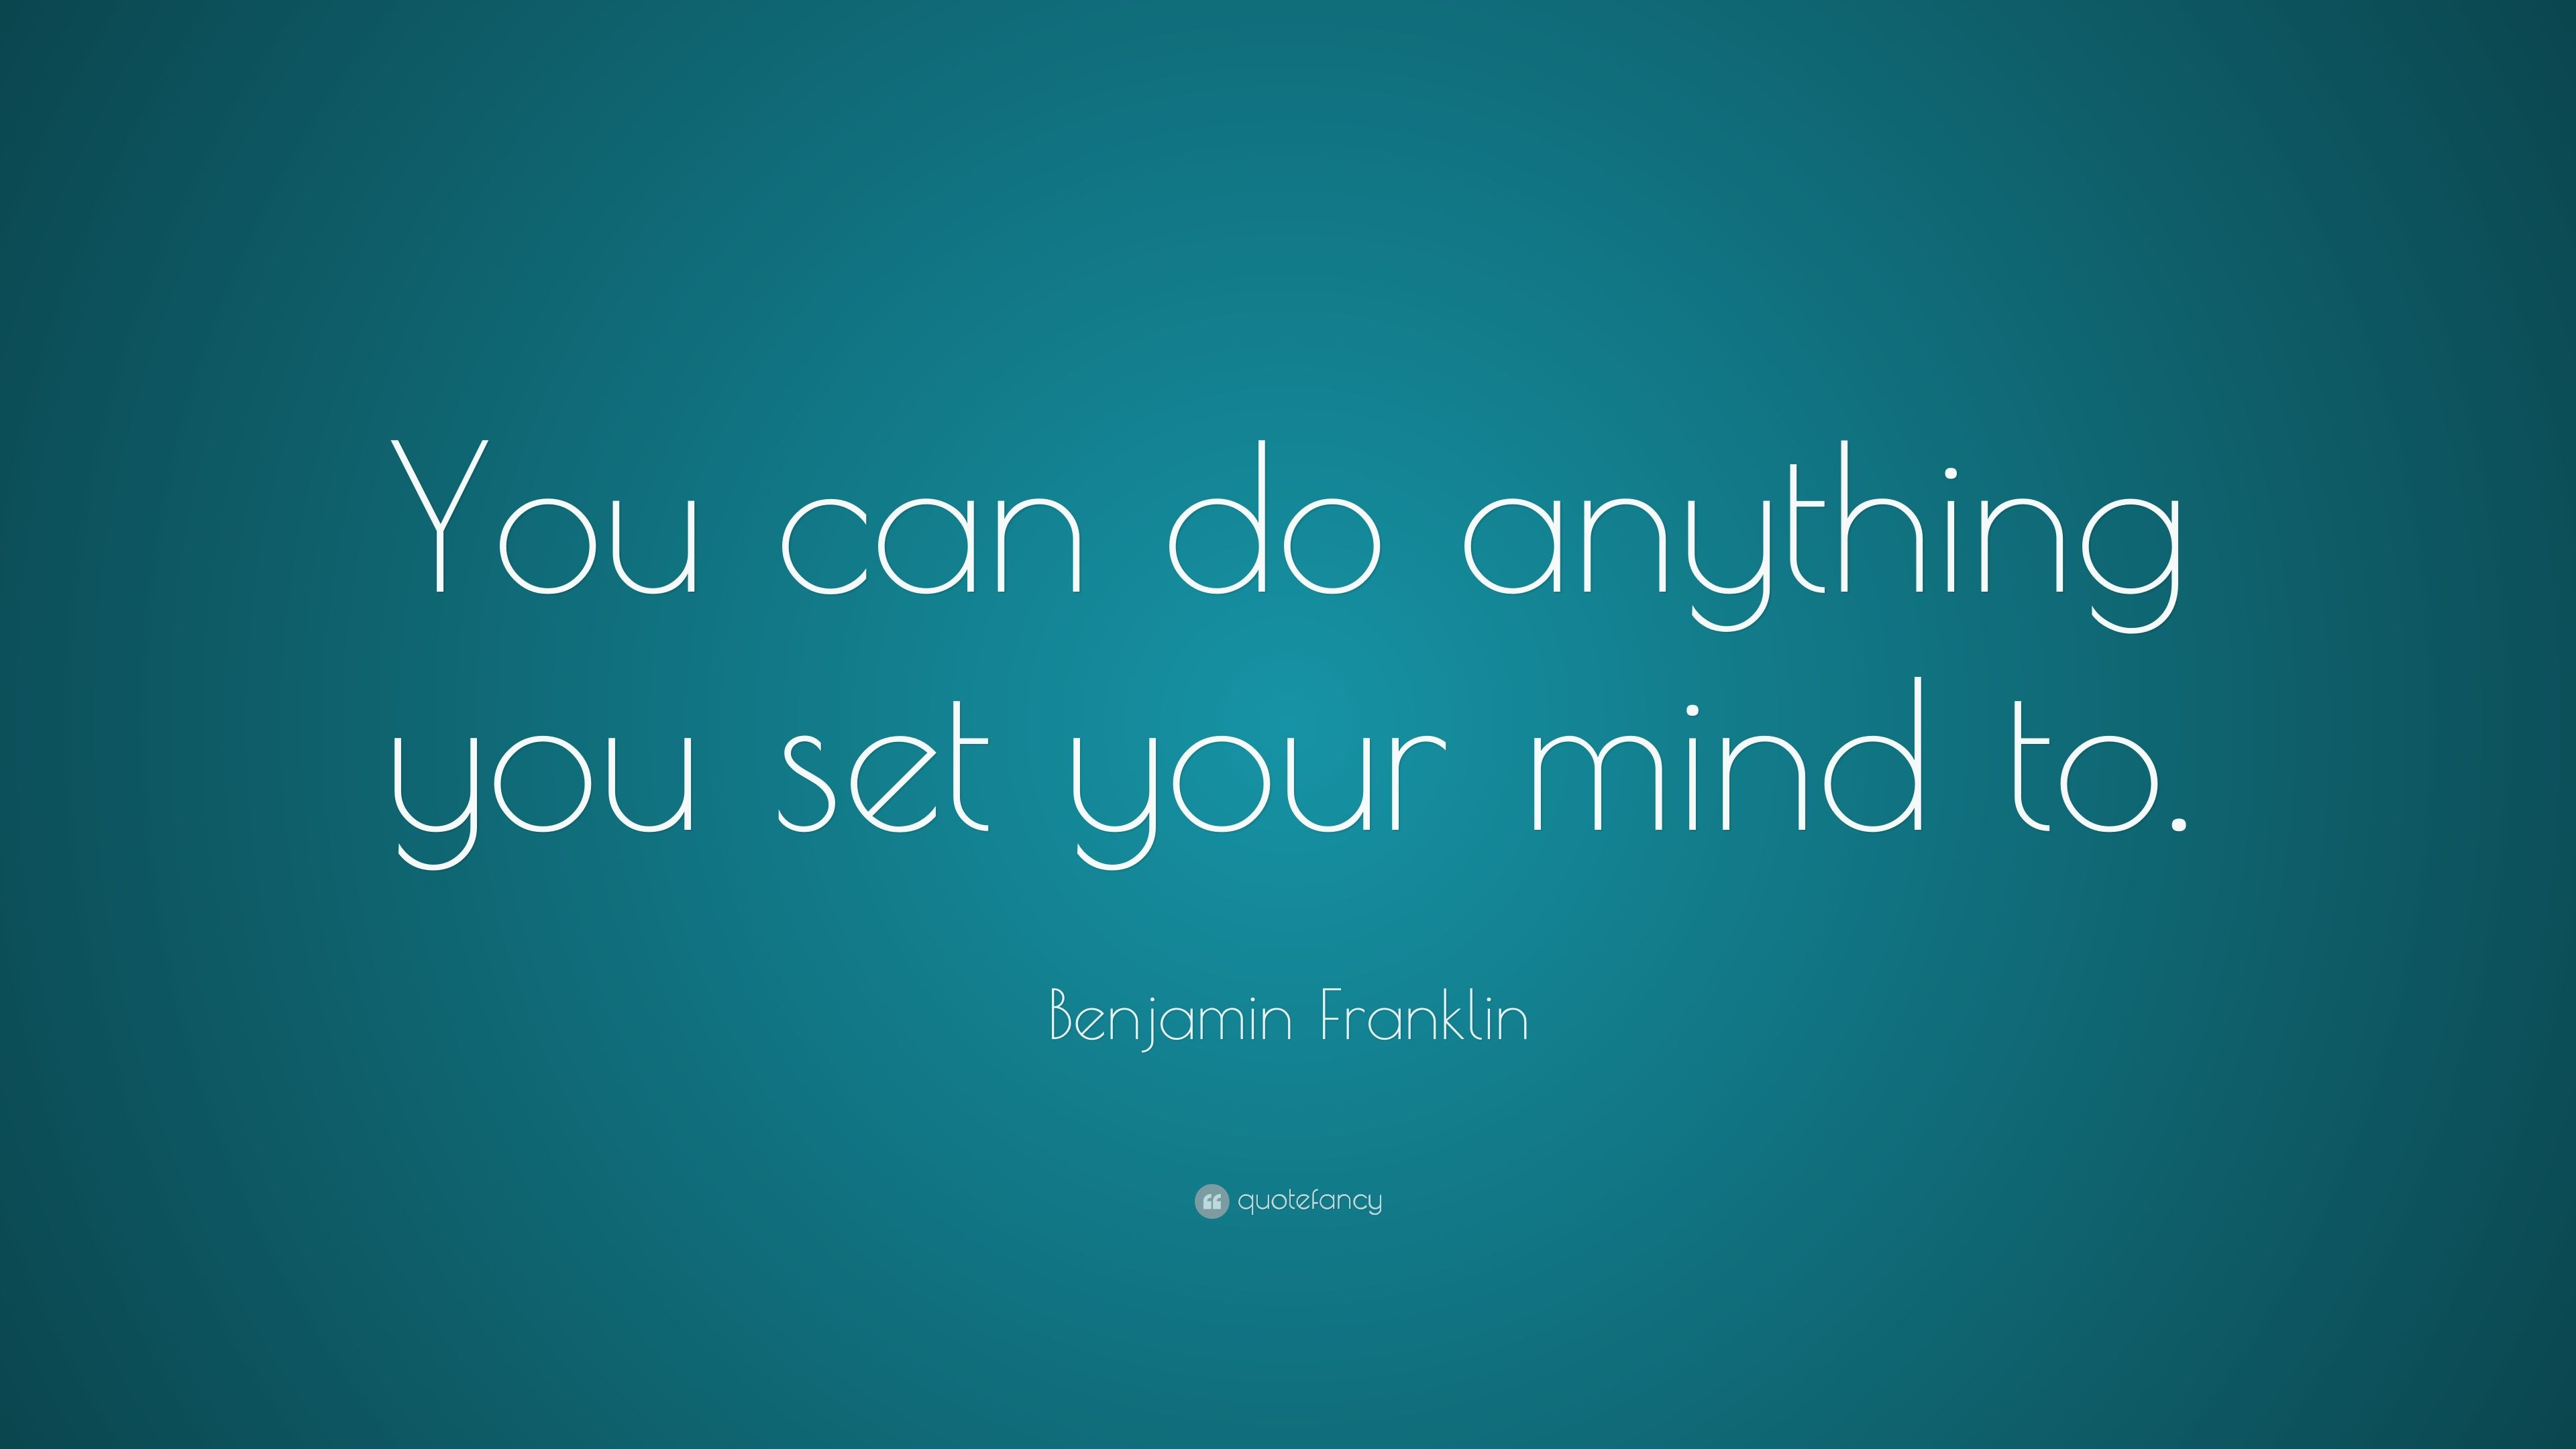 Benjamin Franklin Quote You Can Do Anything You Set Your Mind To Job Quotes Steve Jobs Quotes Benjamin Franklin Quotes